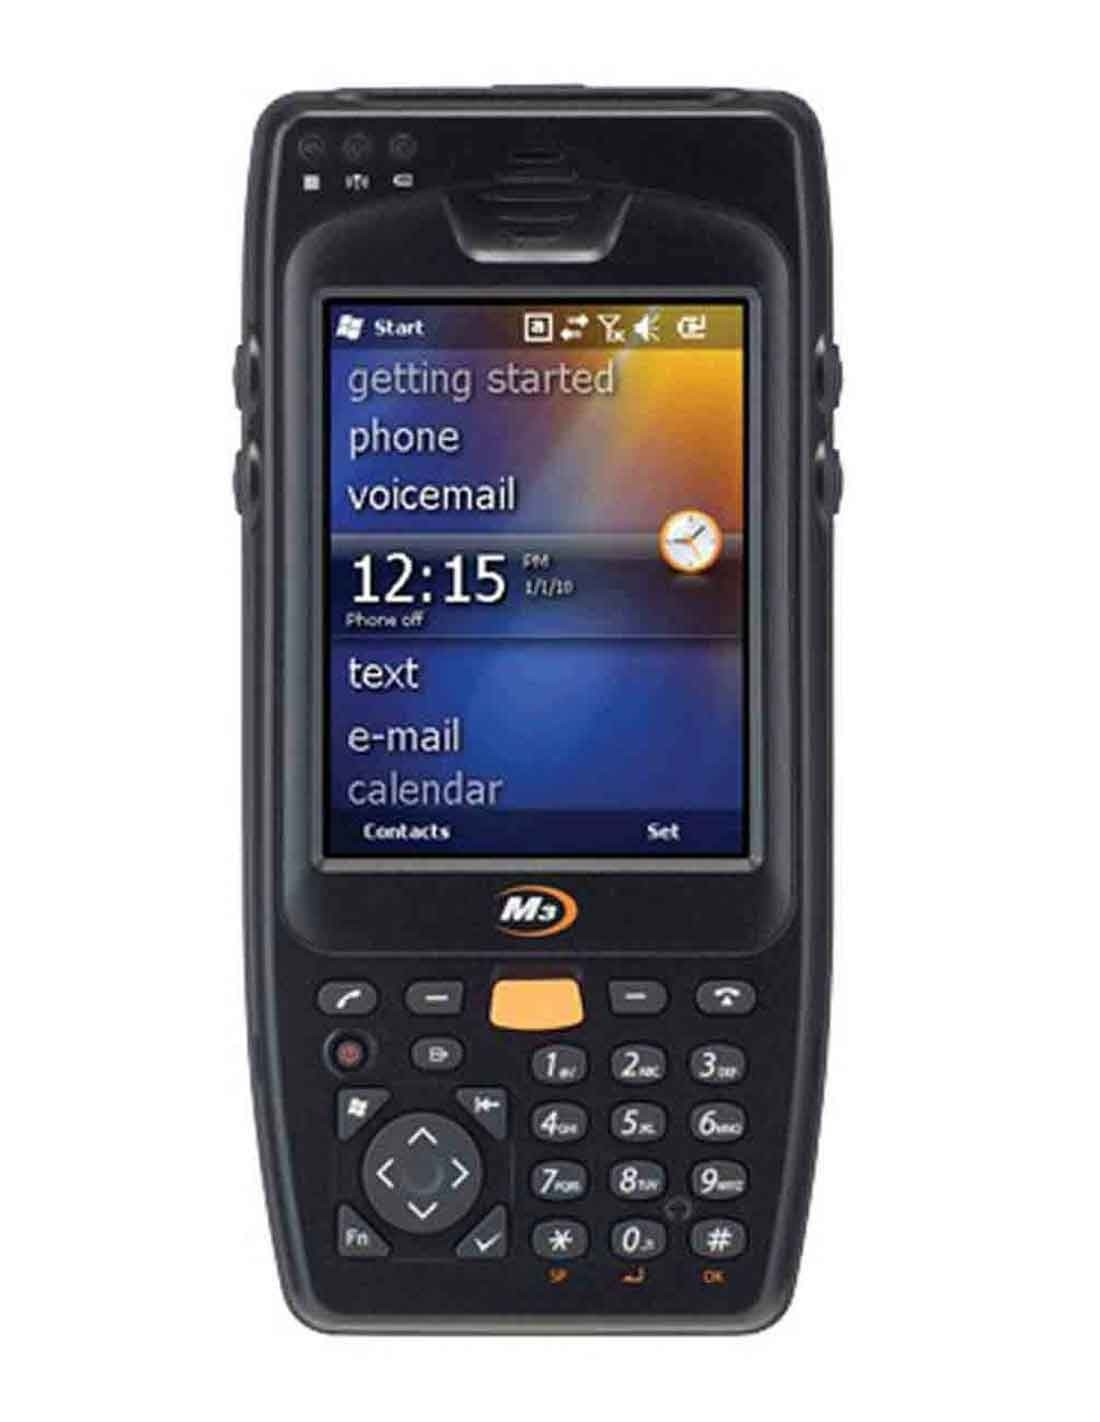 M3 OX10 1G Mobile in Dubai Online Store